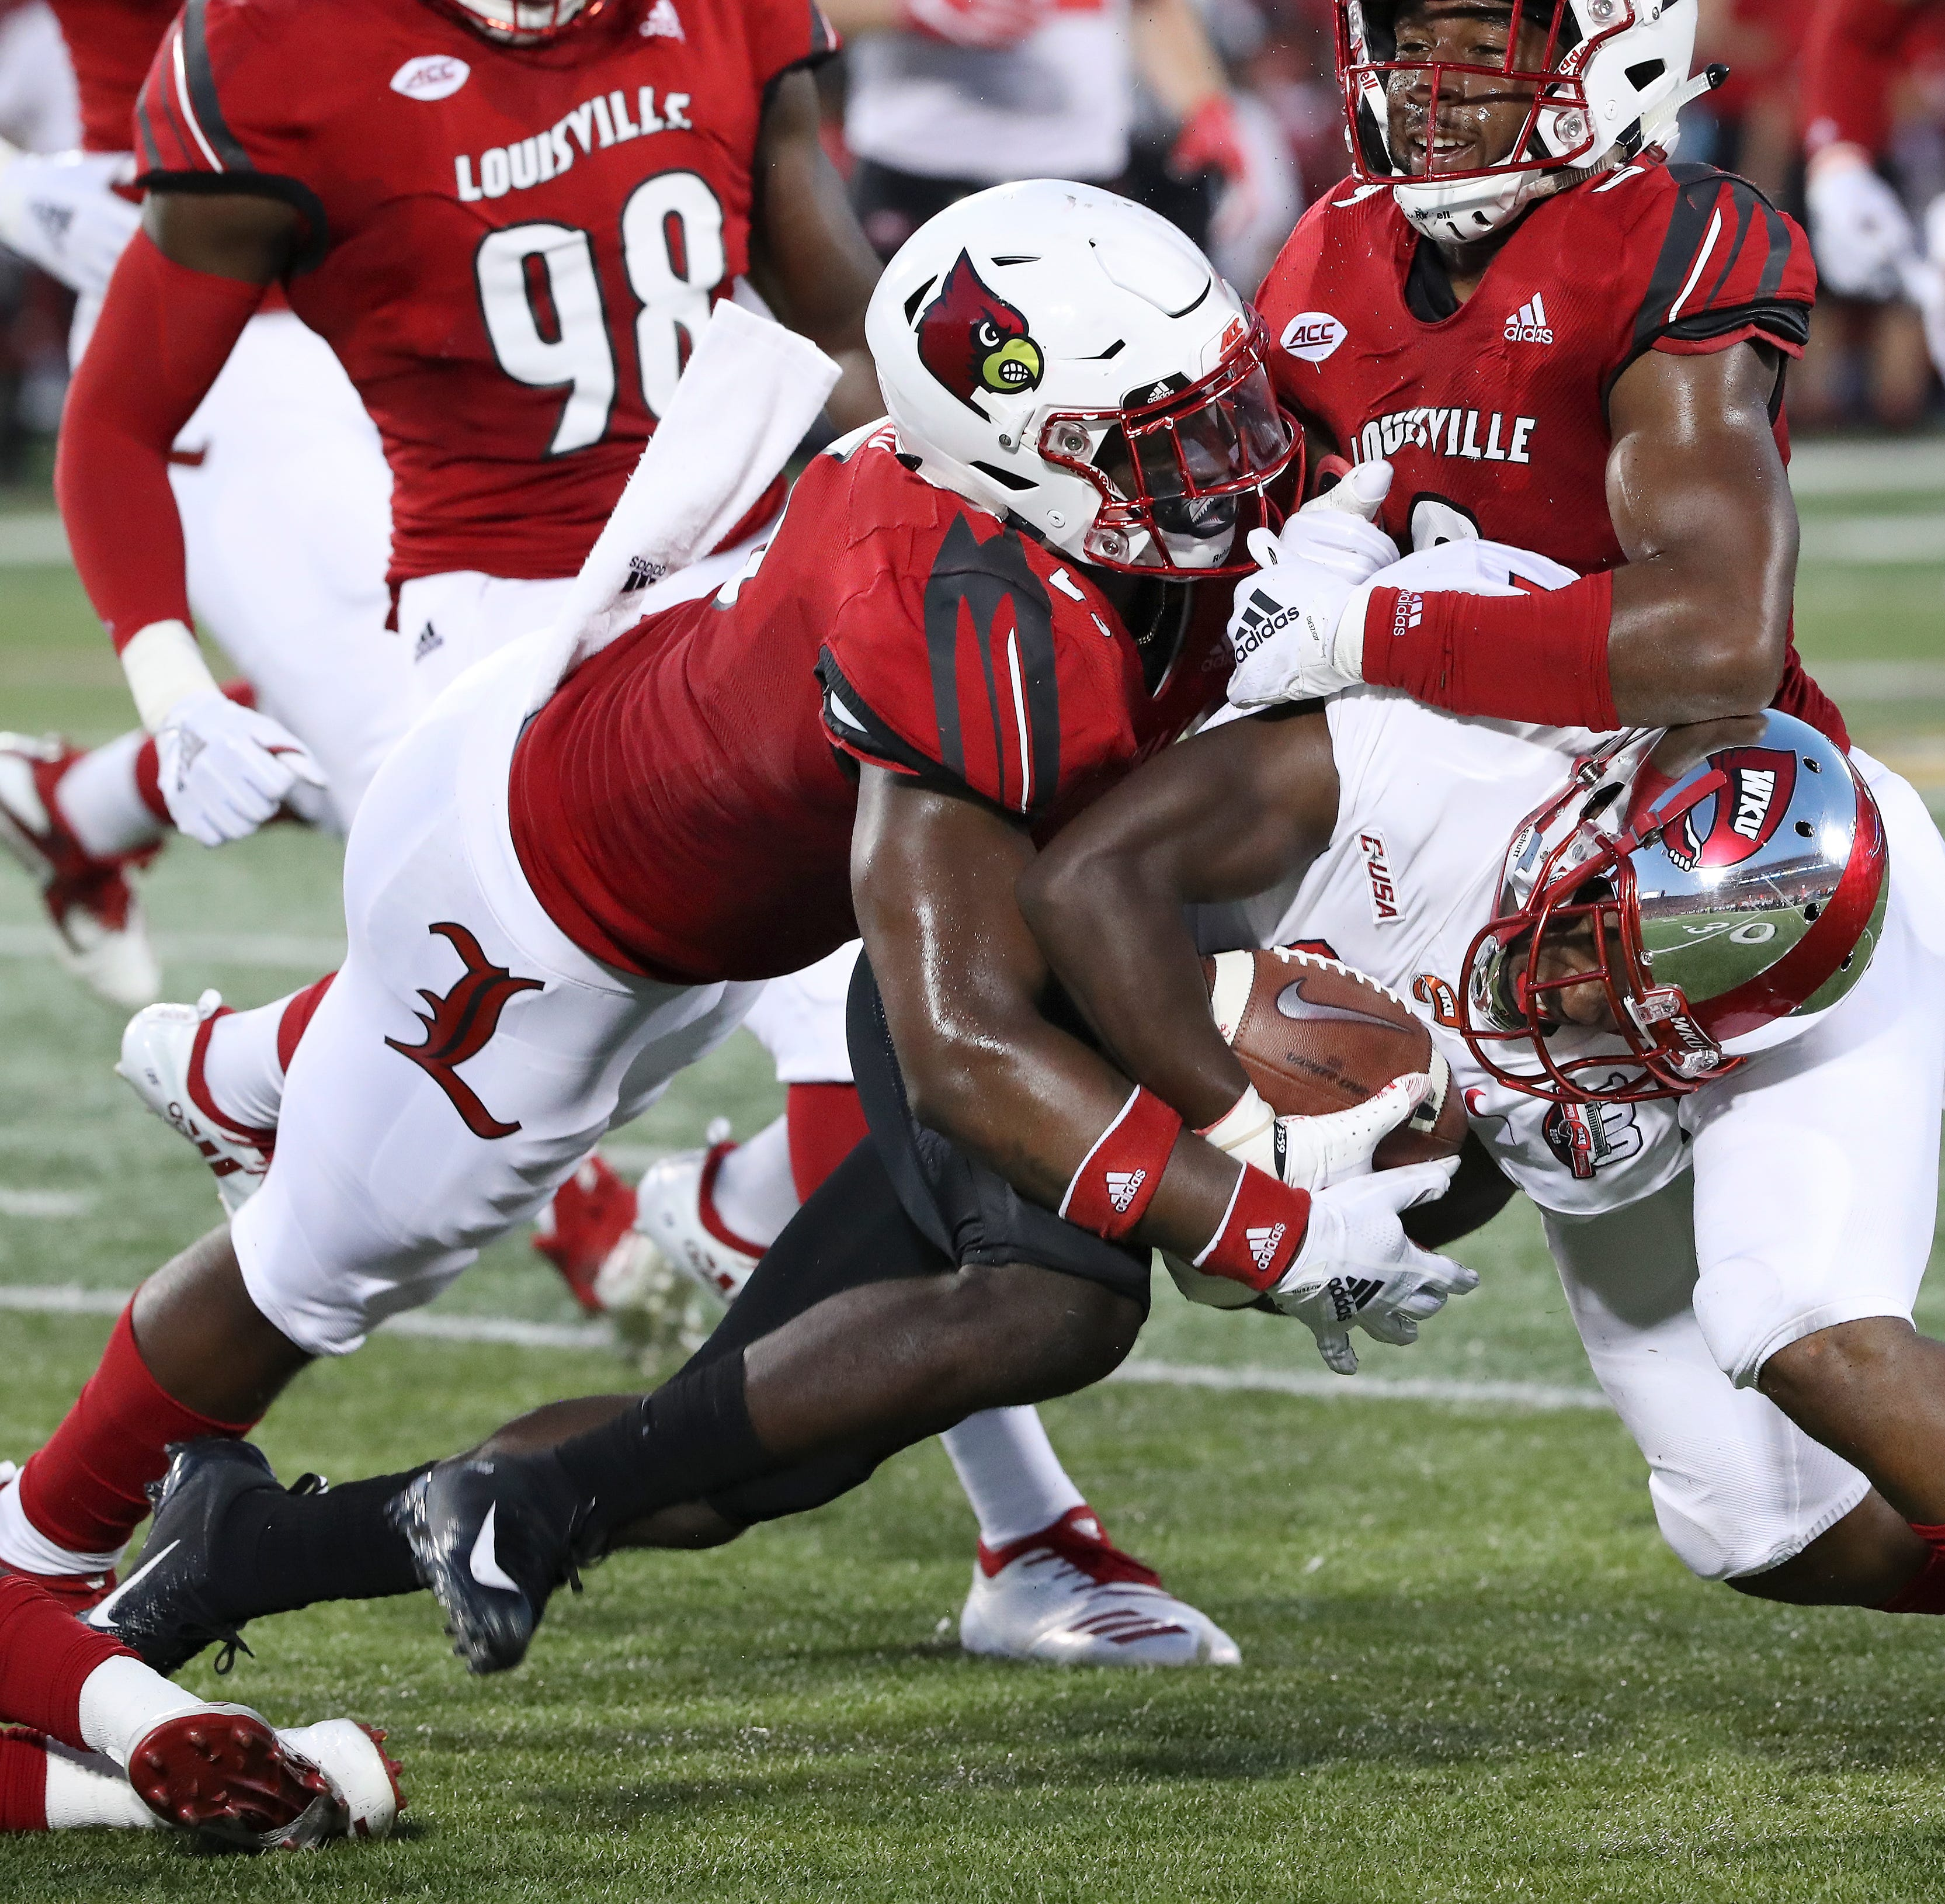 Louisville football LB Robert Hicks withdraws name from NCAA's transfer portal